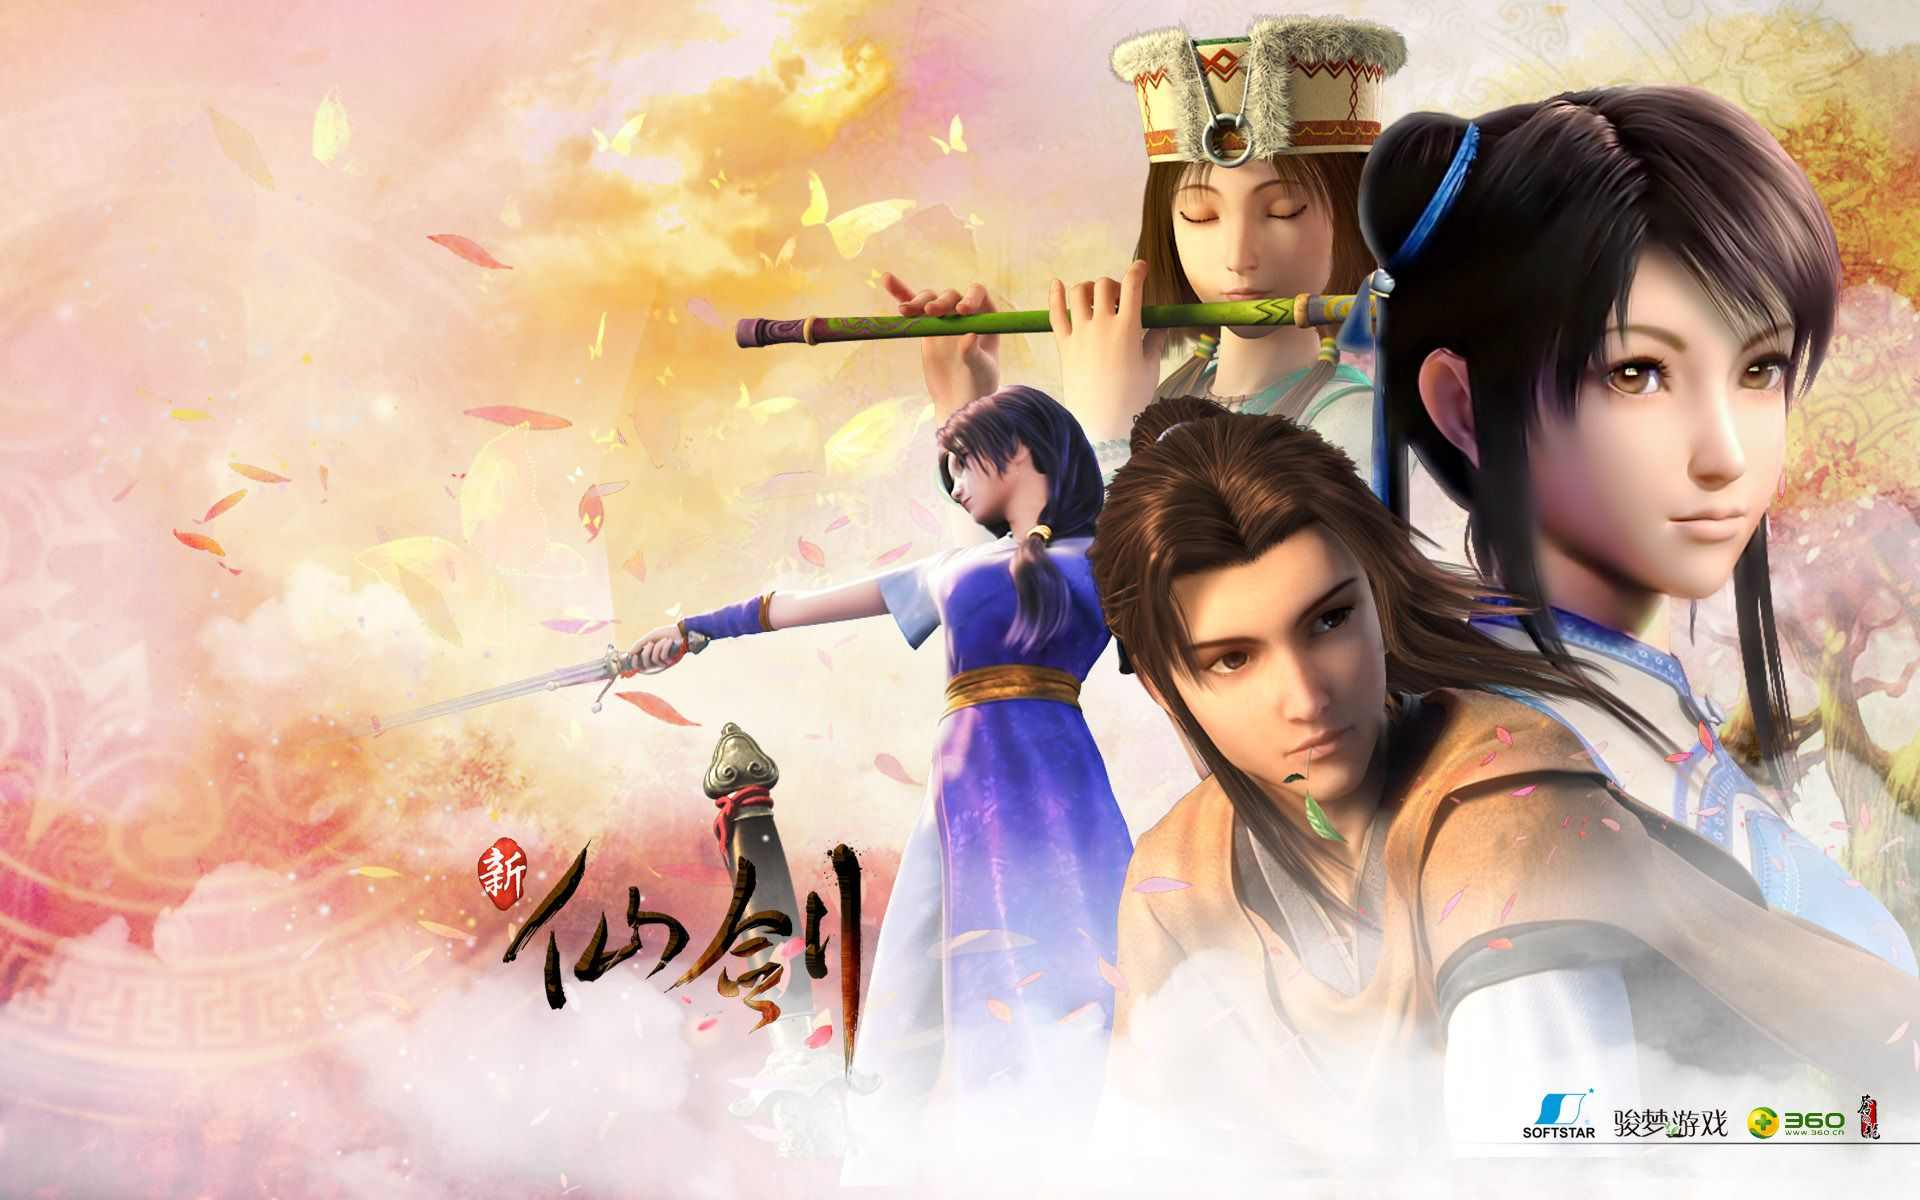 Anime Girl Playing Game Wallpaper Chinese Paladin 3 Download Free Full Game Speed New